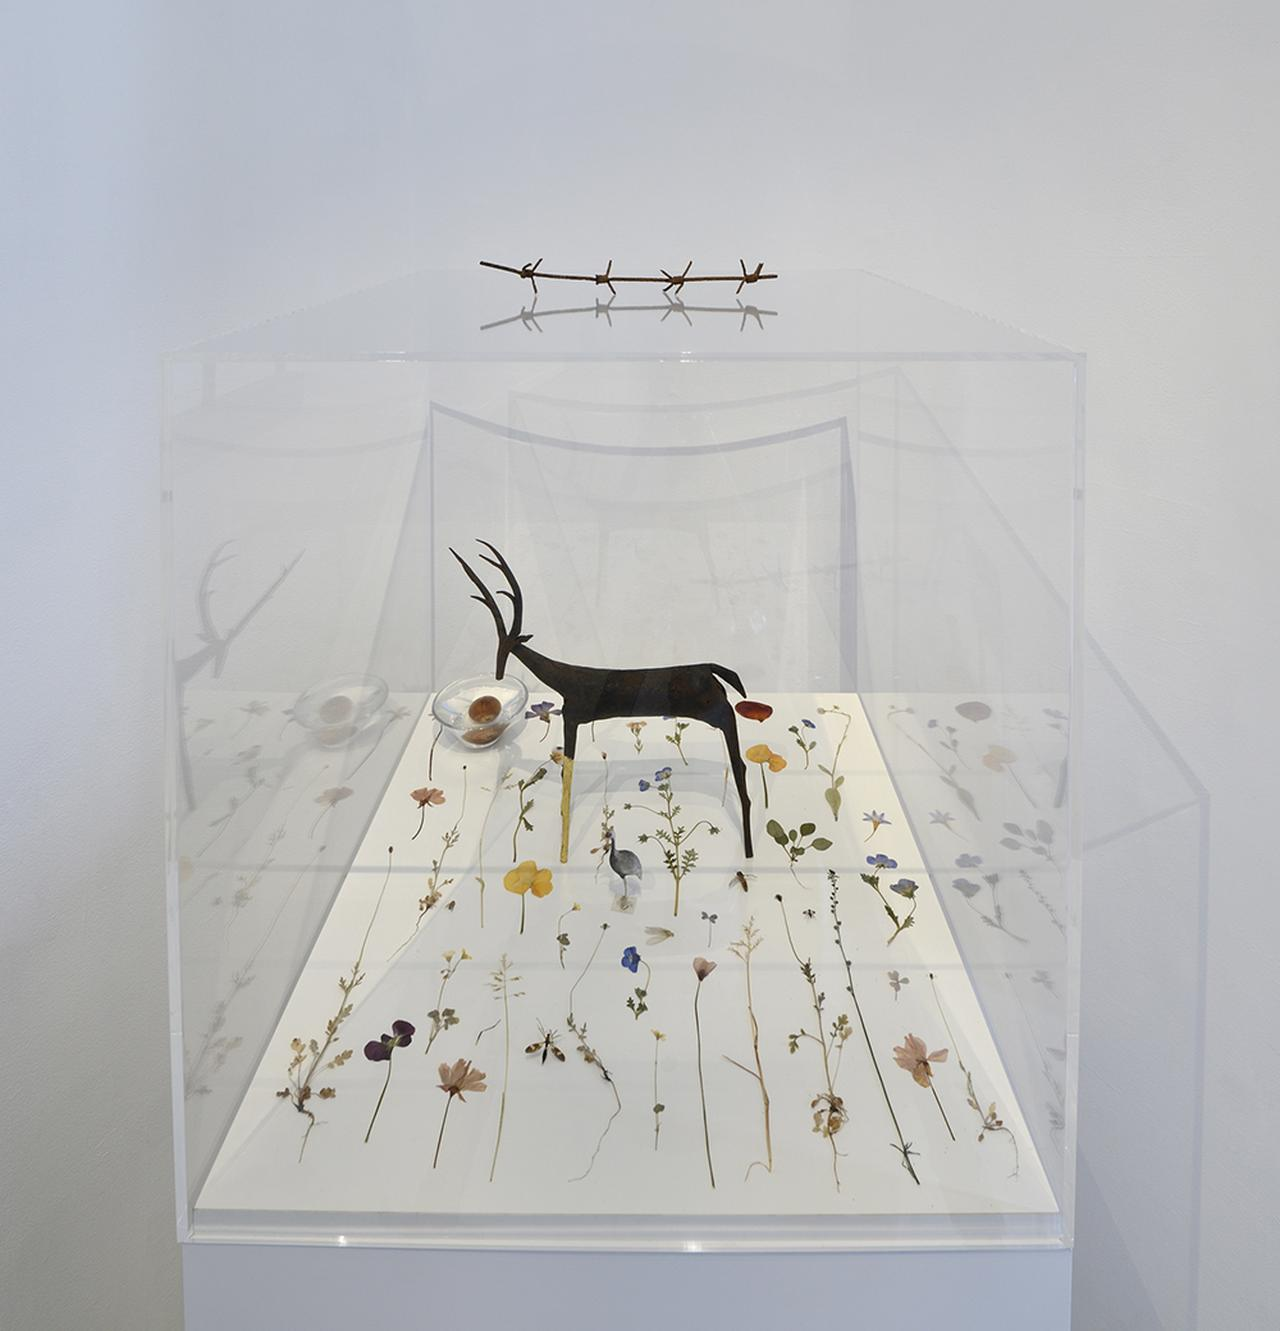 Images : 『The Nature Rules 自然国家:Dreaming of Earth Project』 原美術館